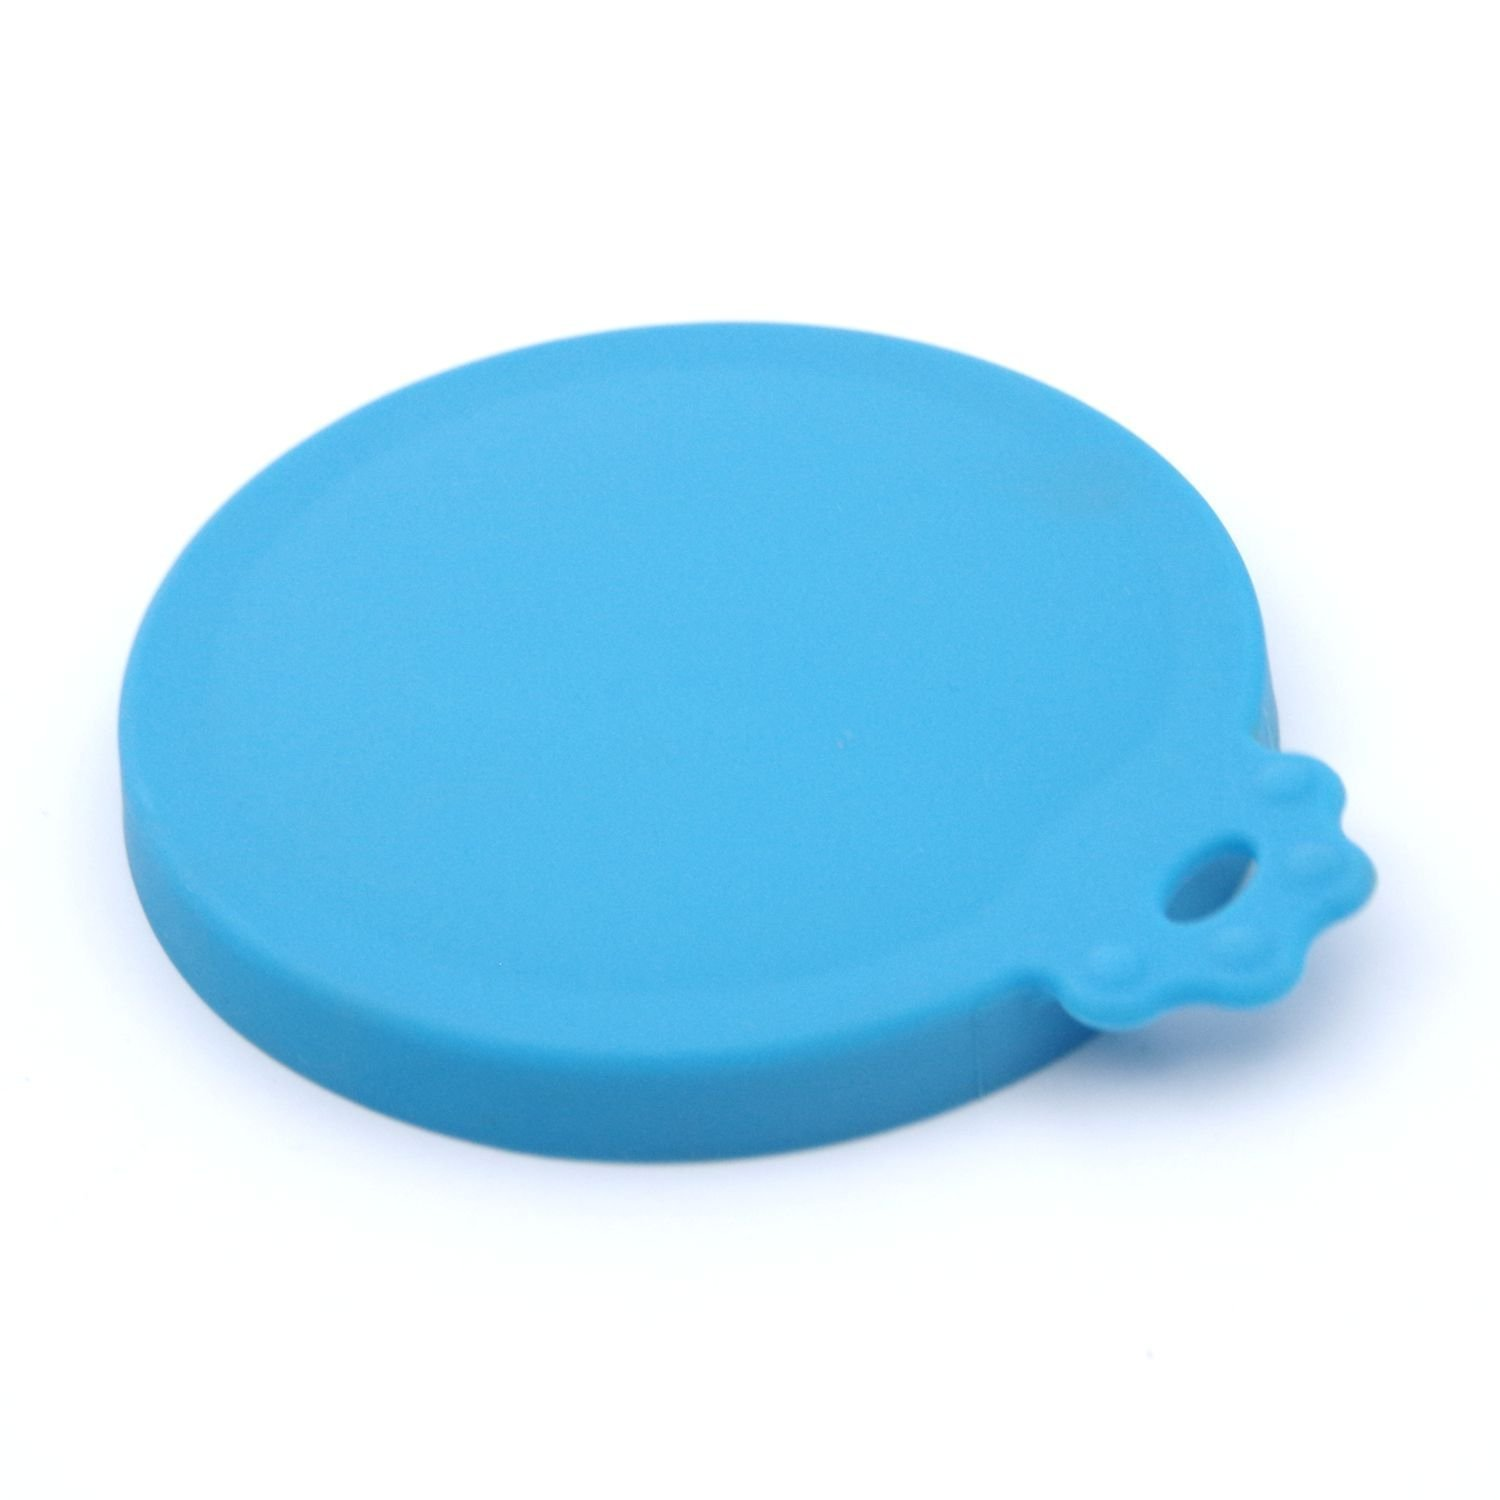 Super Design Silicone Can Cover for Multiple Sizes Blue